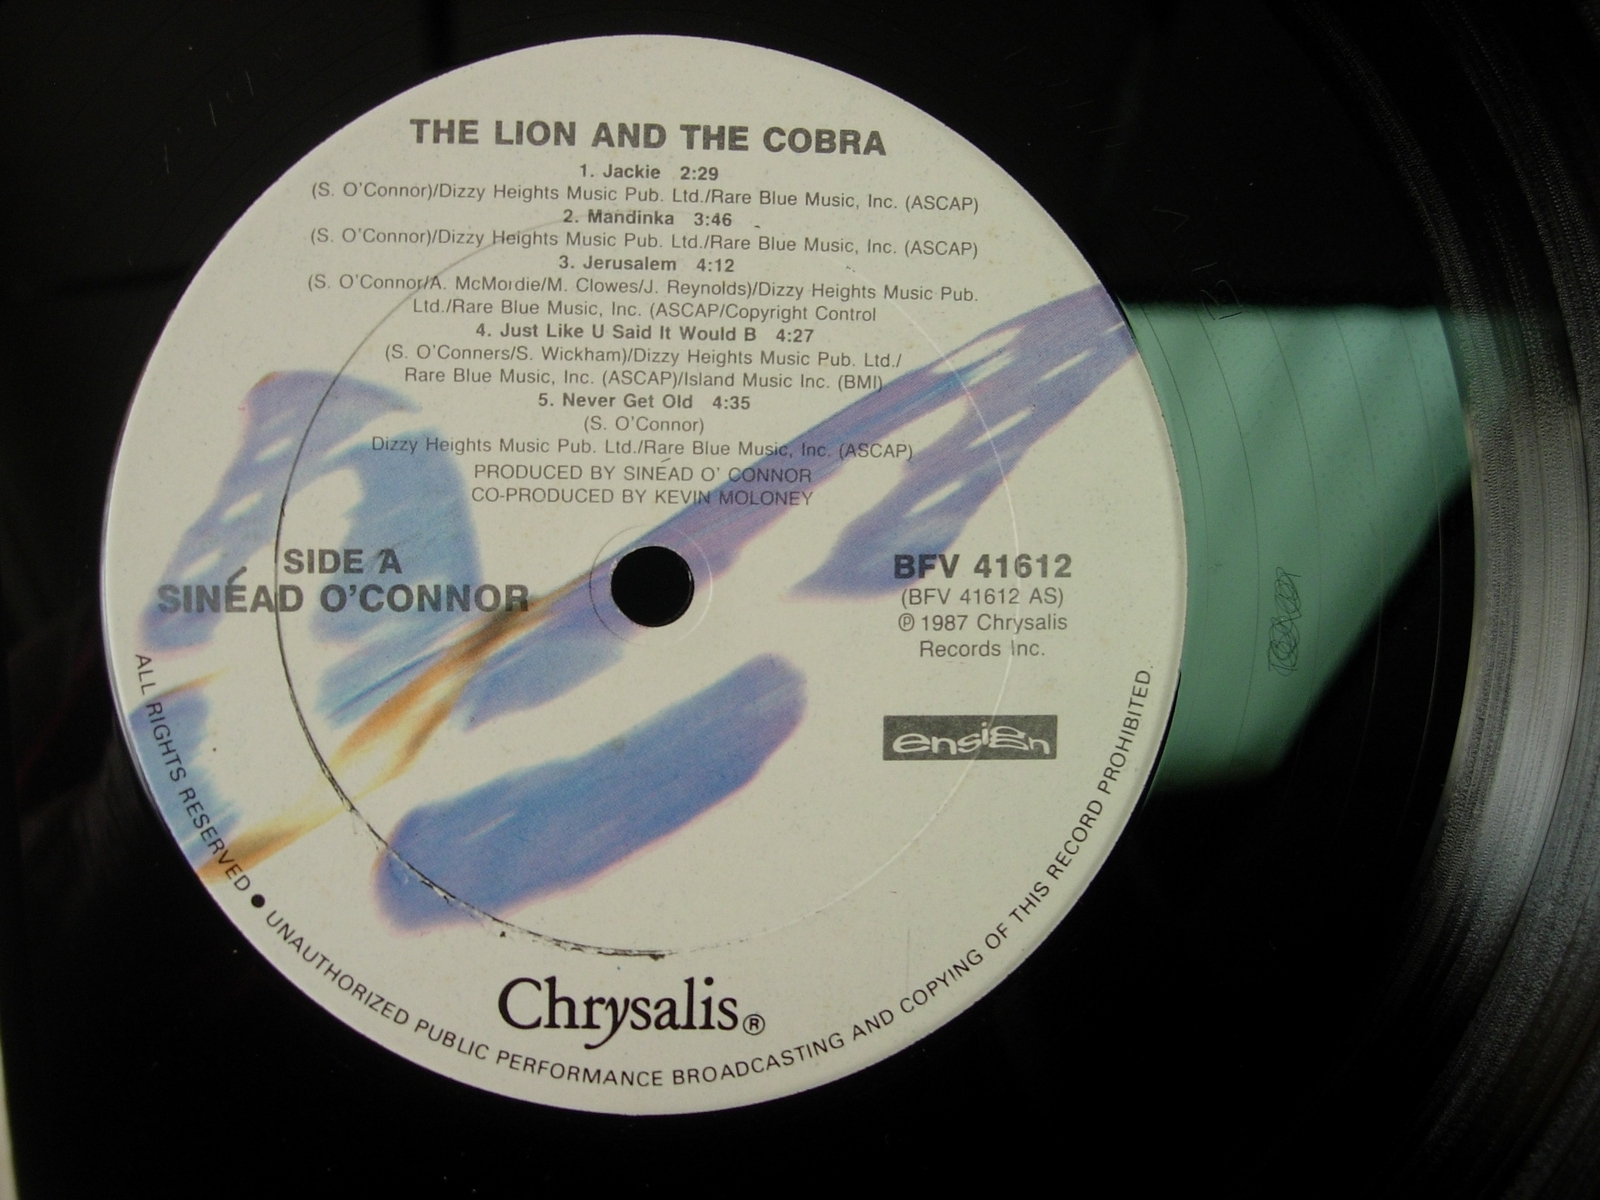 Sinead O'Connor - The Lion and The Cobra - Chrysalis BFV 416